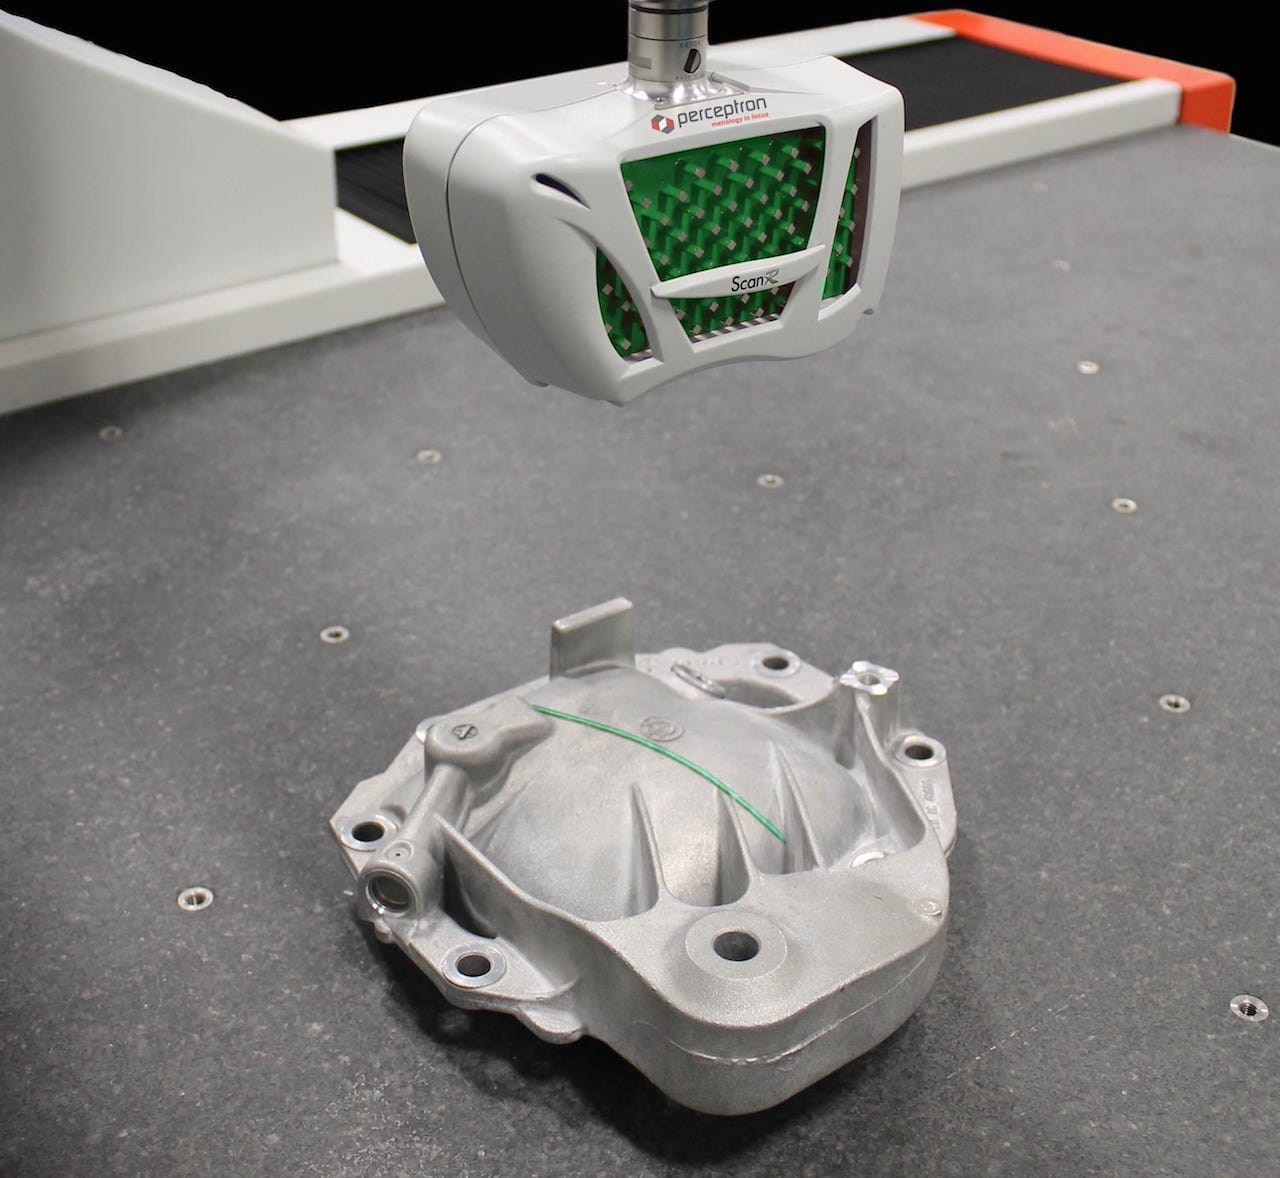 3D scanning a completed part to ensure it meets specifications